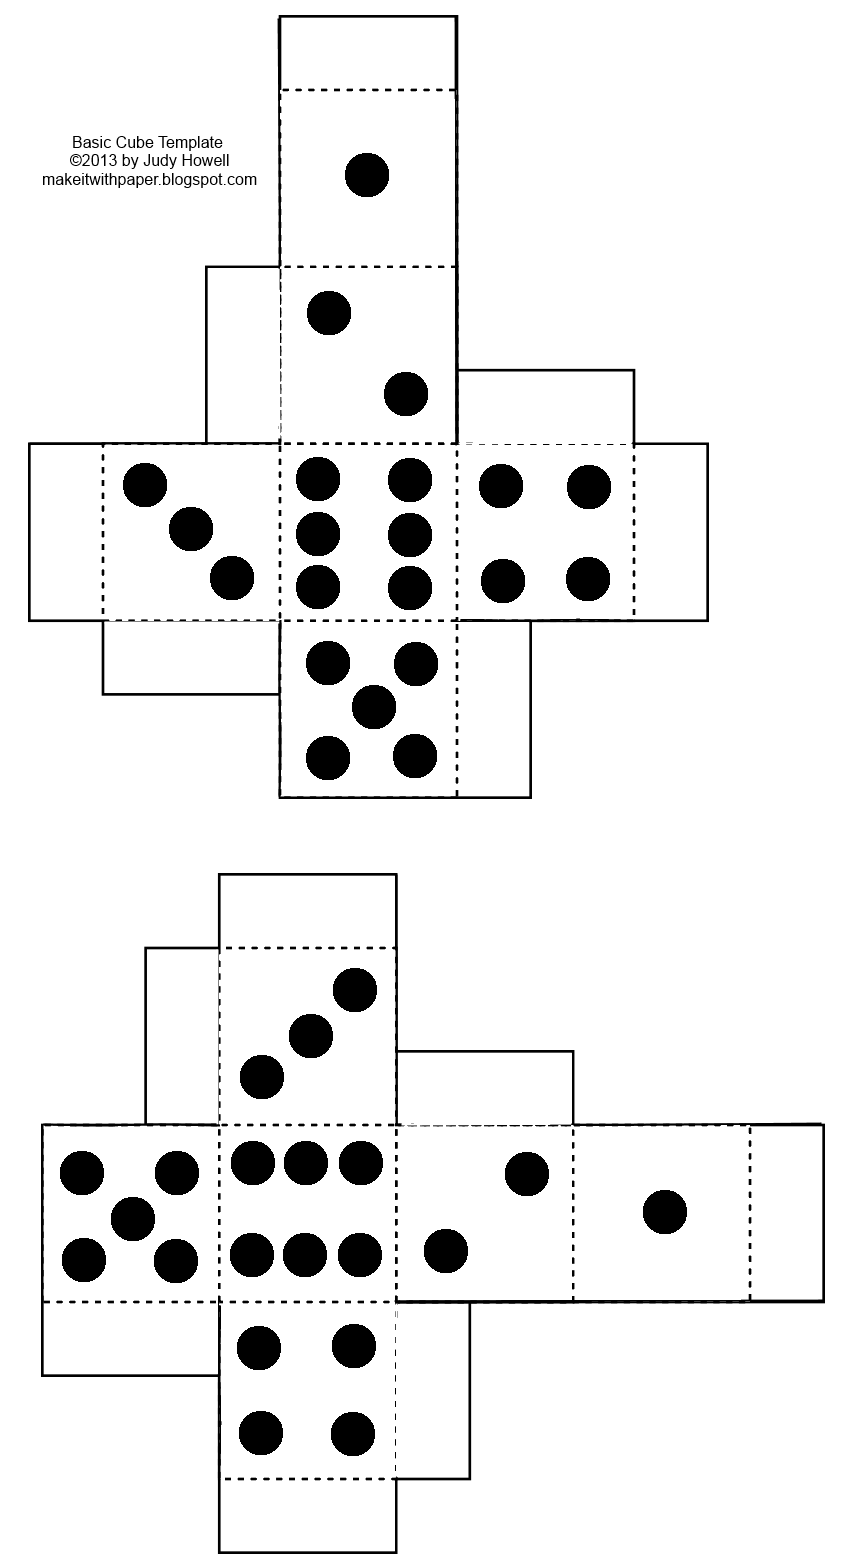 Blank drawing dice. Game resources sideddie with